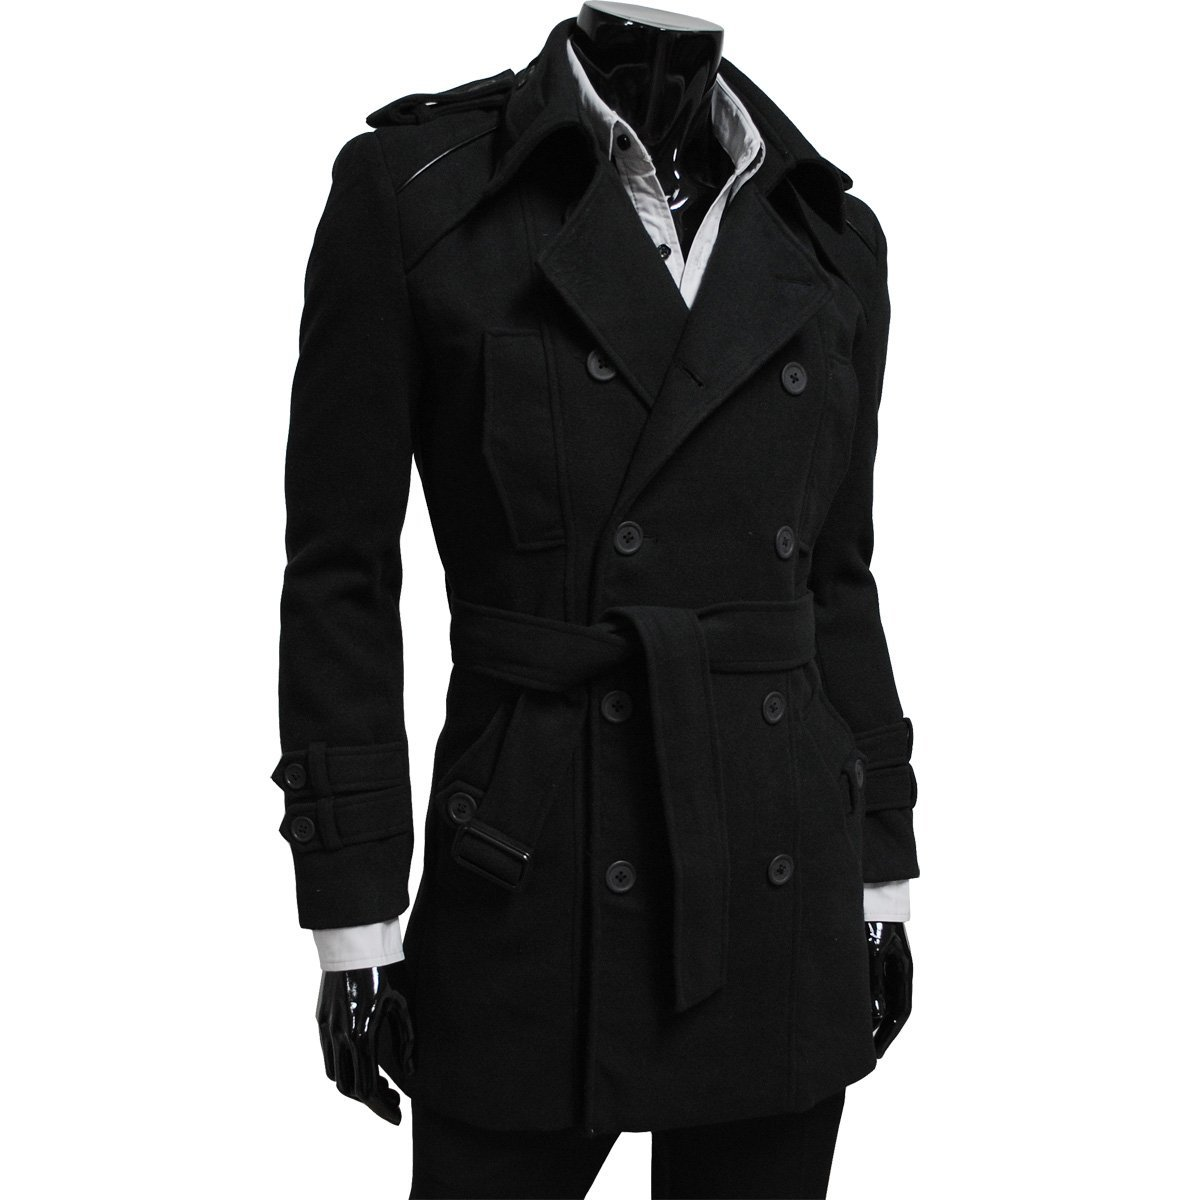 black trench coat, trench coats for men, leather trench coat, hfcpozv